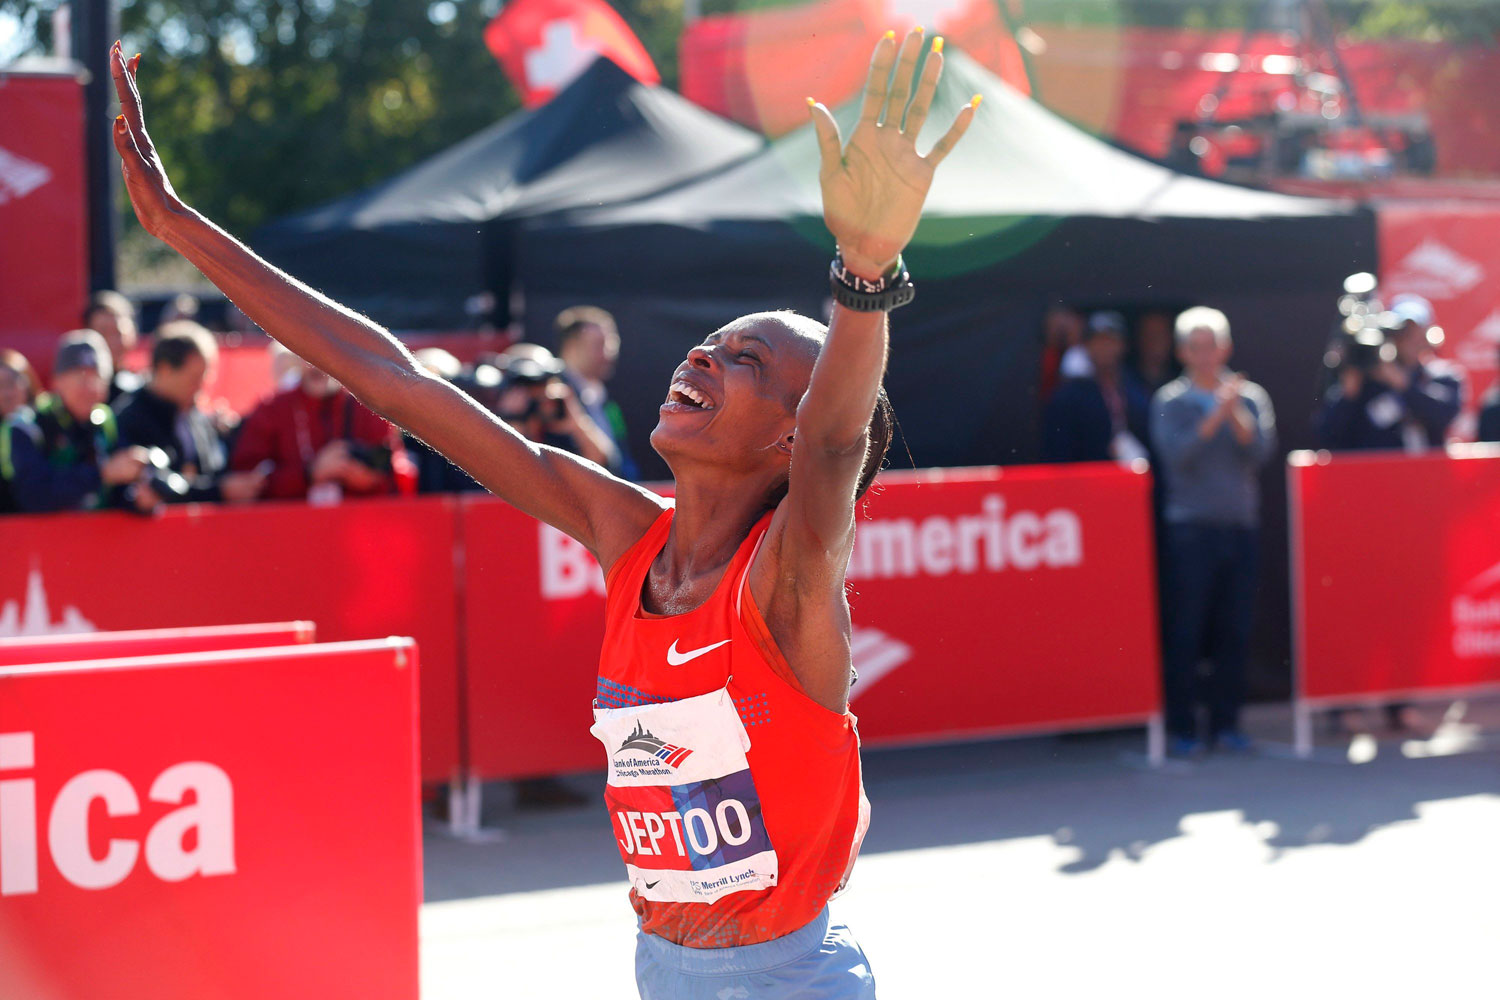 Rita Jeptoo crosses the finish line to win the Bank of America Chicago Marathon in October 2013.